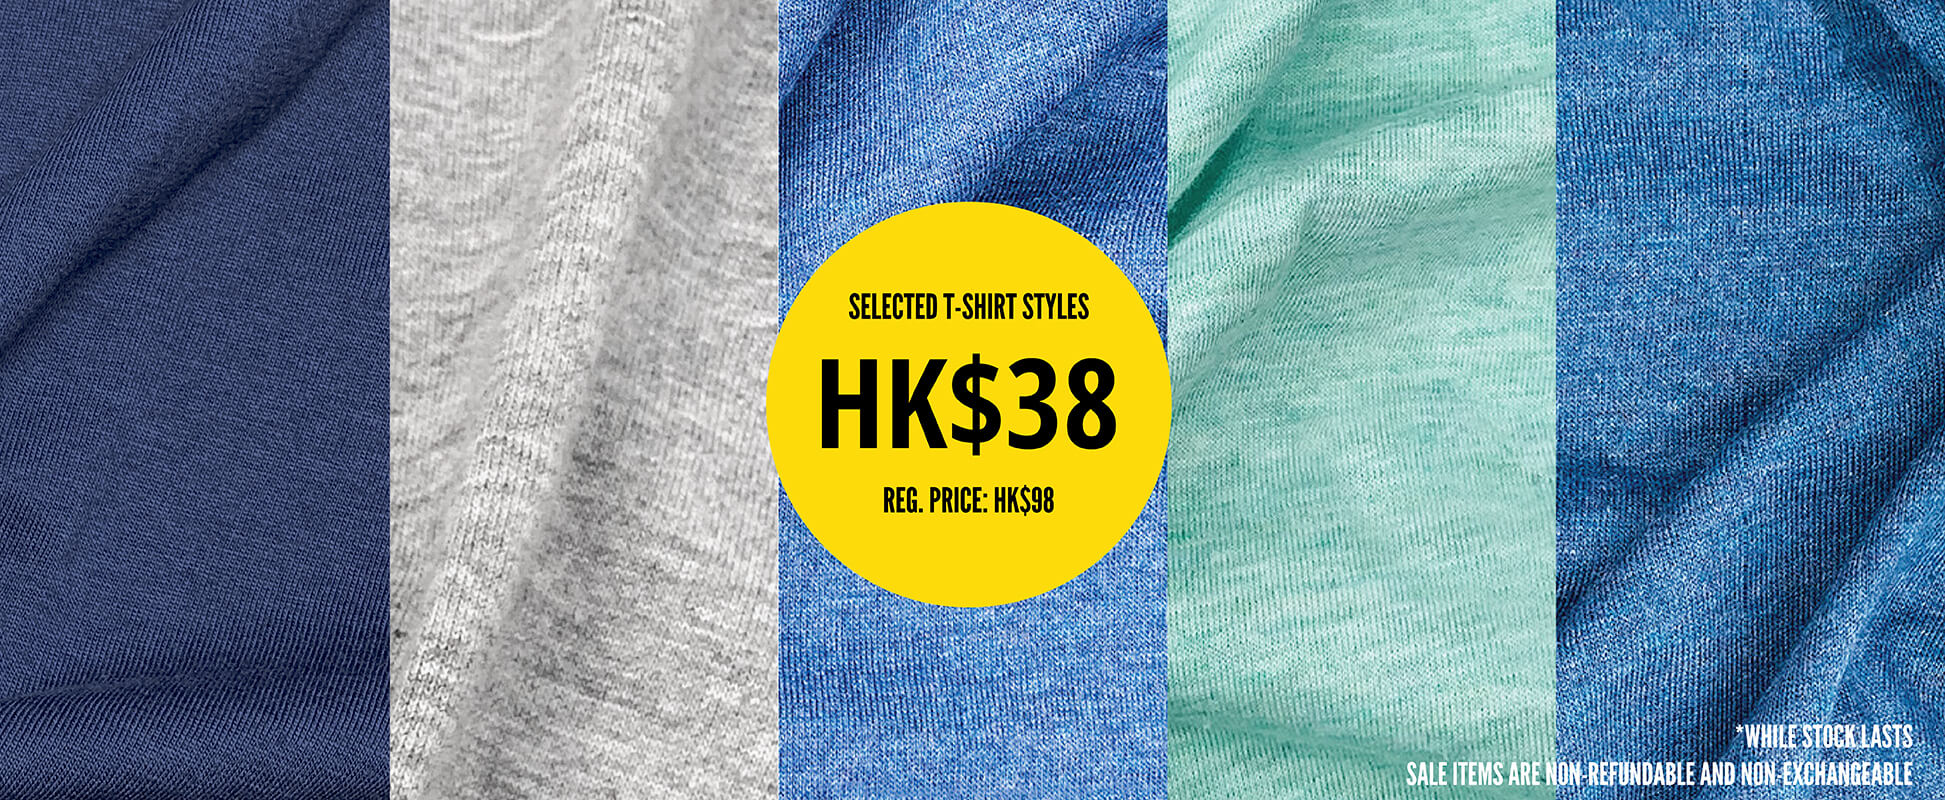 Further reduction on selected t-shirt styles, while stock lasts